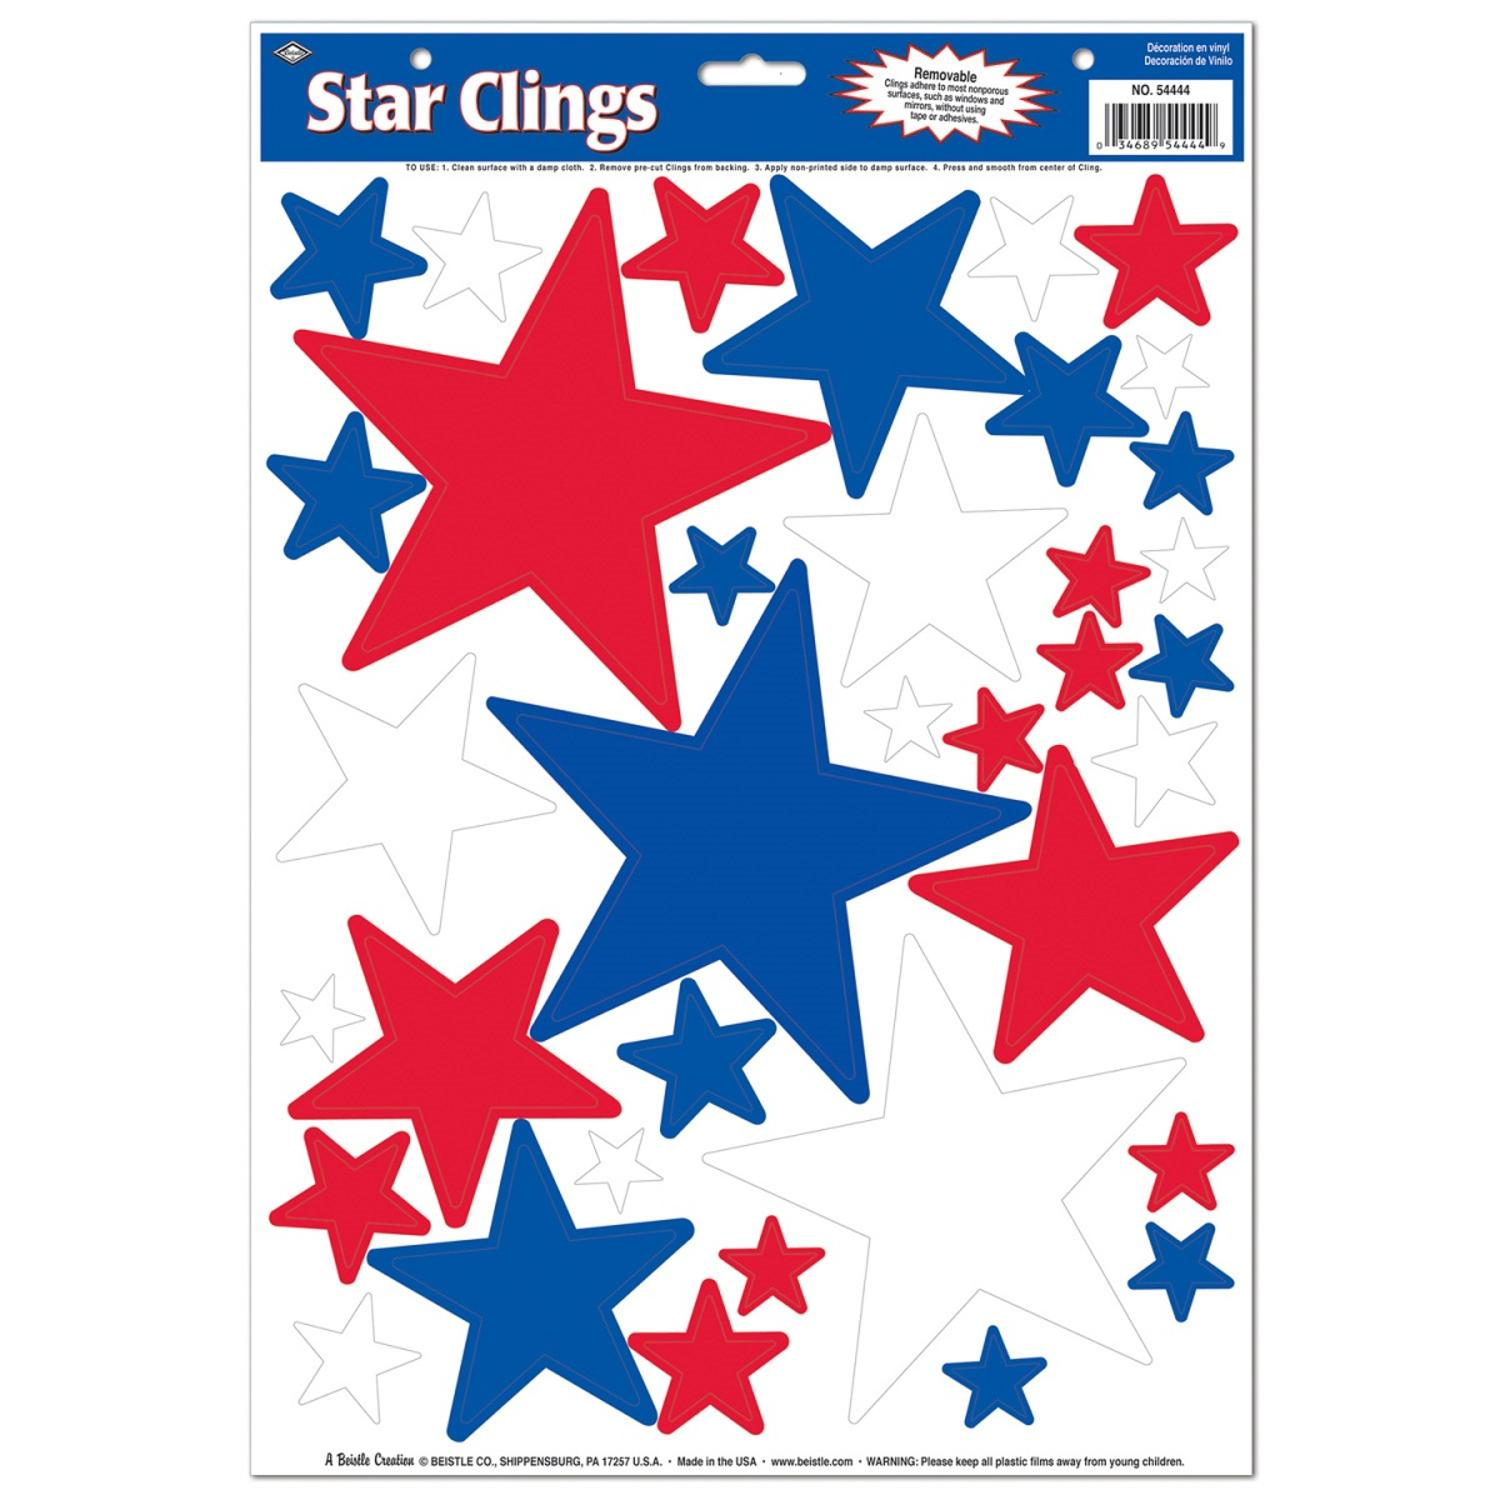 Window Cling Decorations club pack of 432 patriotic red, white and blue star window cling